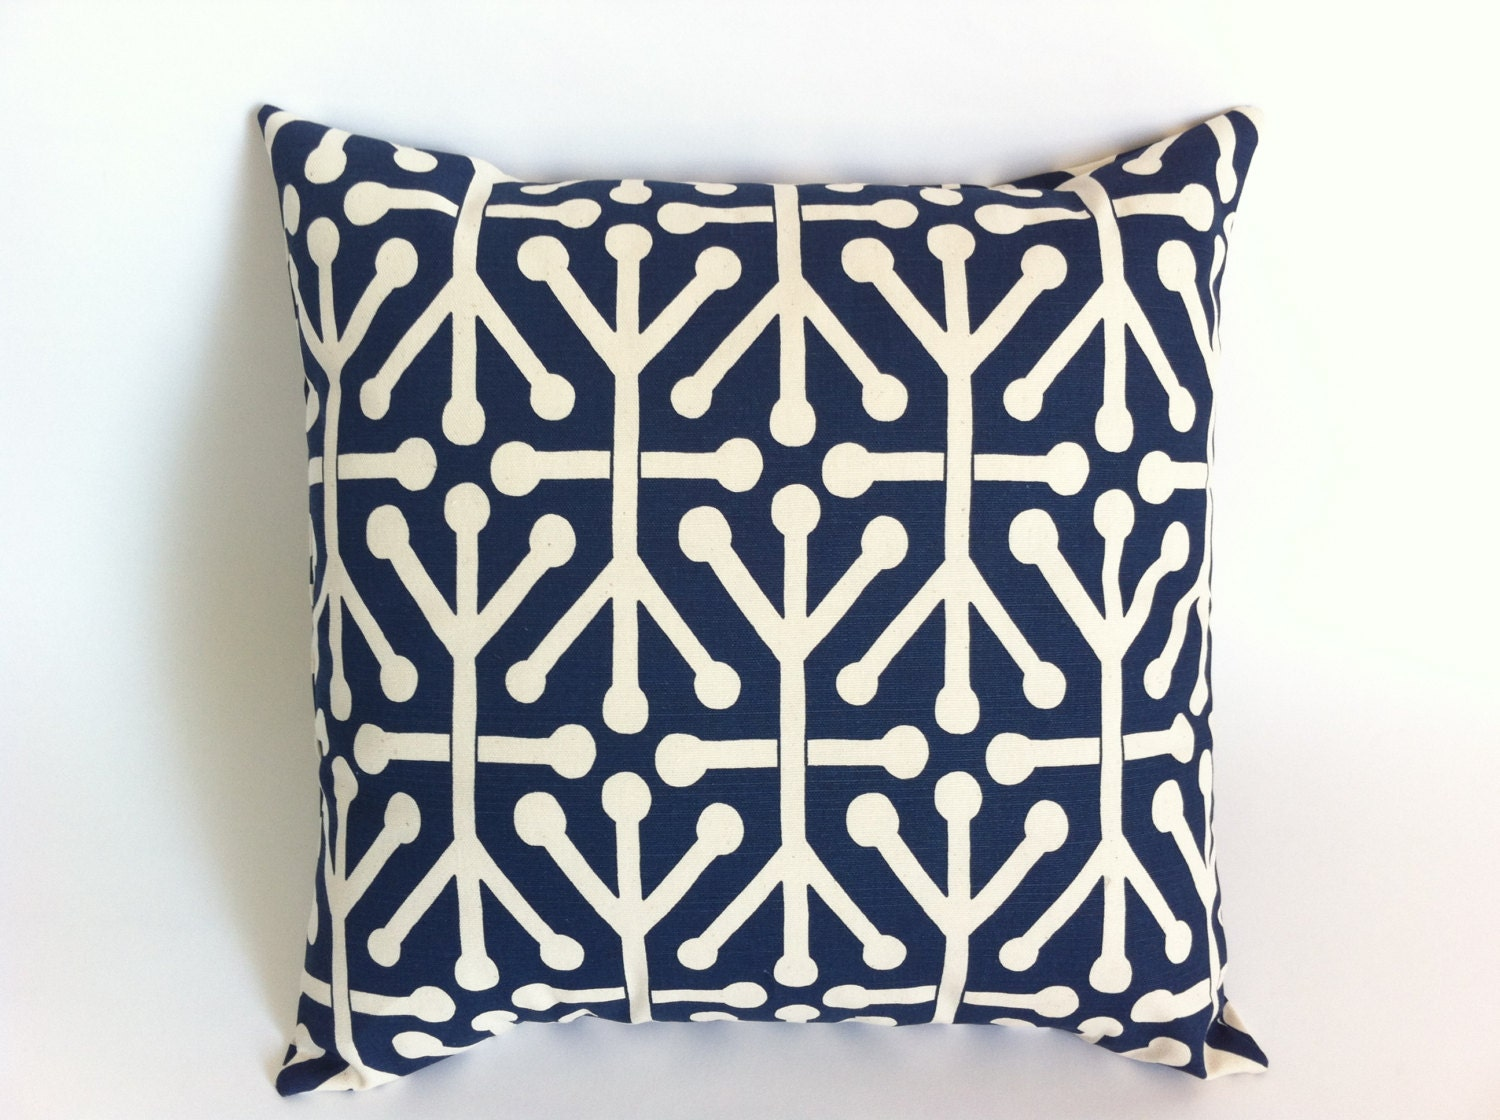 How To Make Zippered Throw Pillow Covers : Two Navy Blue Decorative Throw Zipper Pillow Covers by Pillomatic